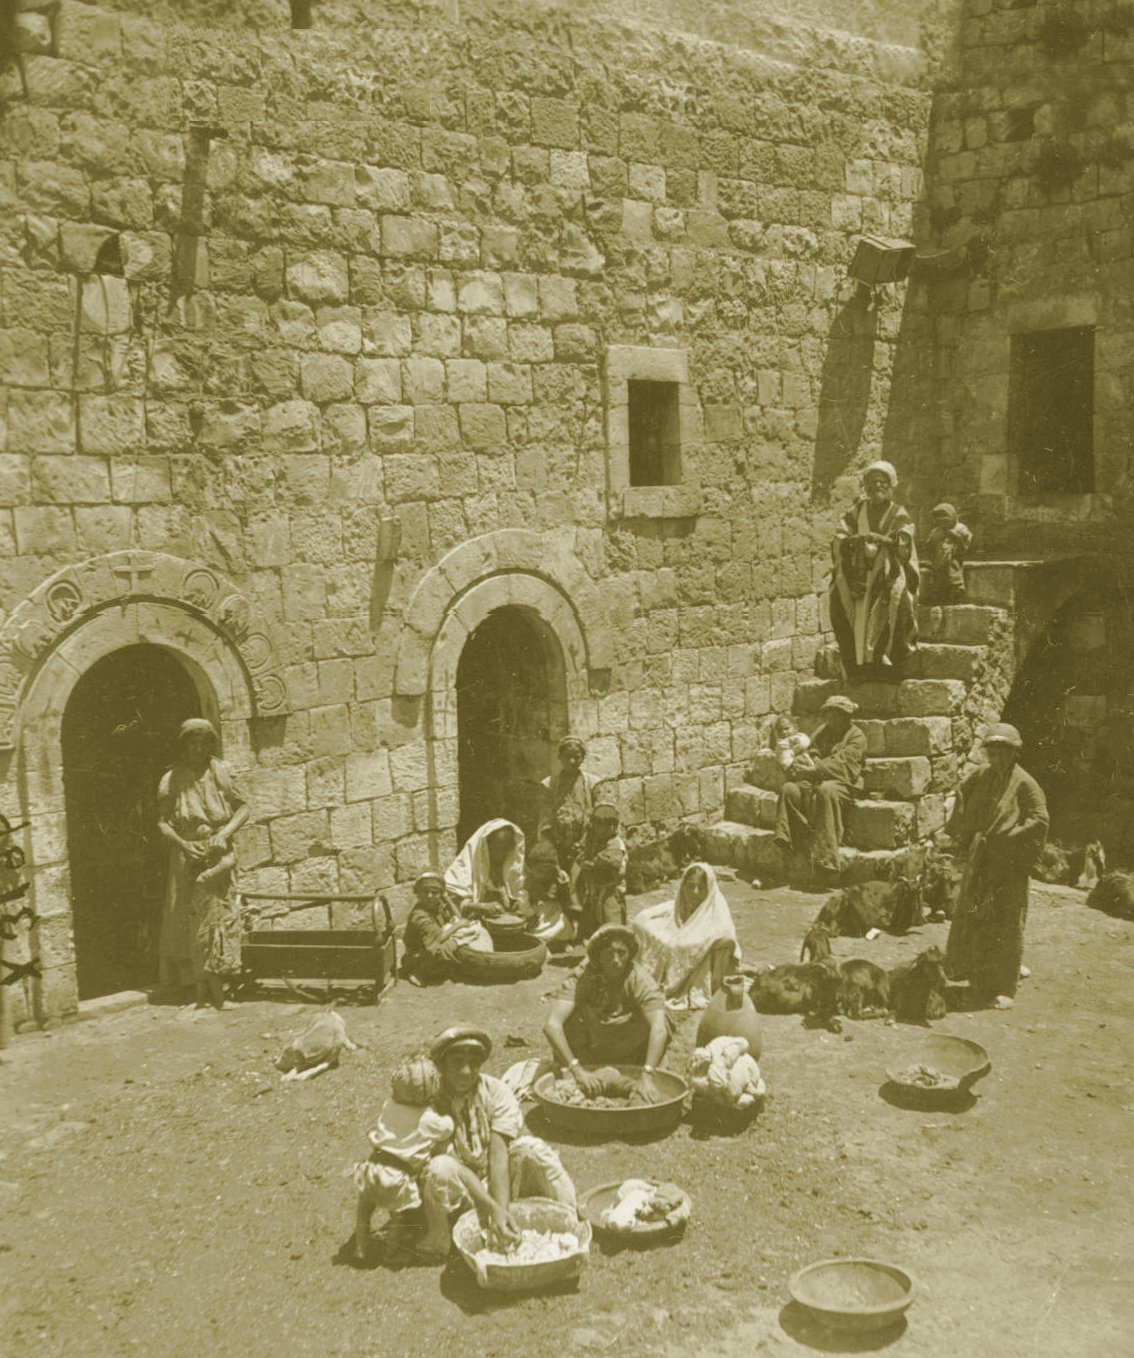 Ramallah - رام الله : RAMALLAH - Washing day in courtyard of a house in Ramallah (Could possibly be in Cana of Galilee - Kufr Kanna), circa 1900s